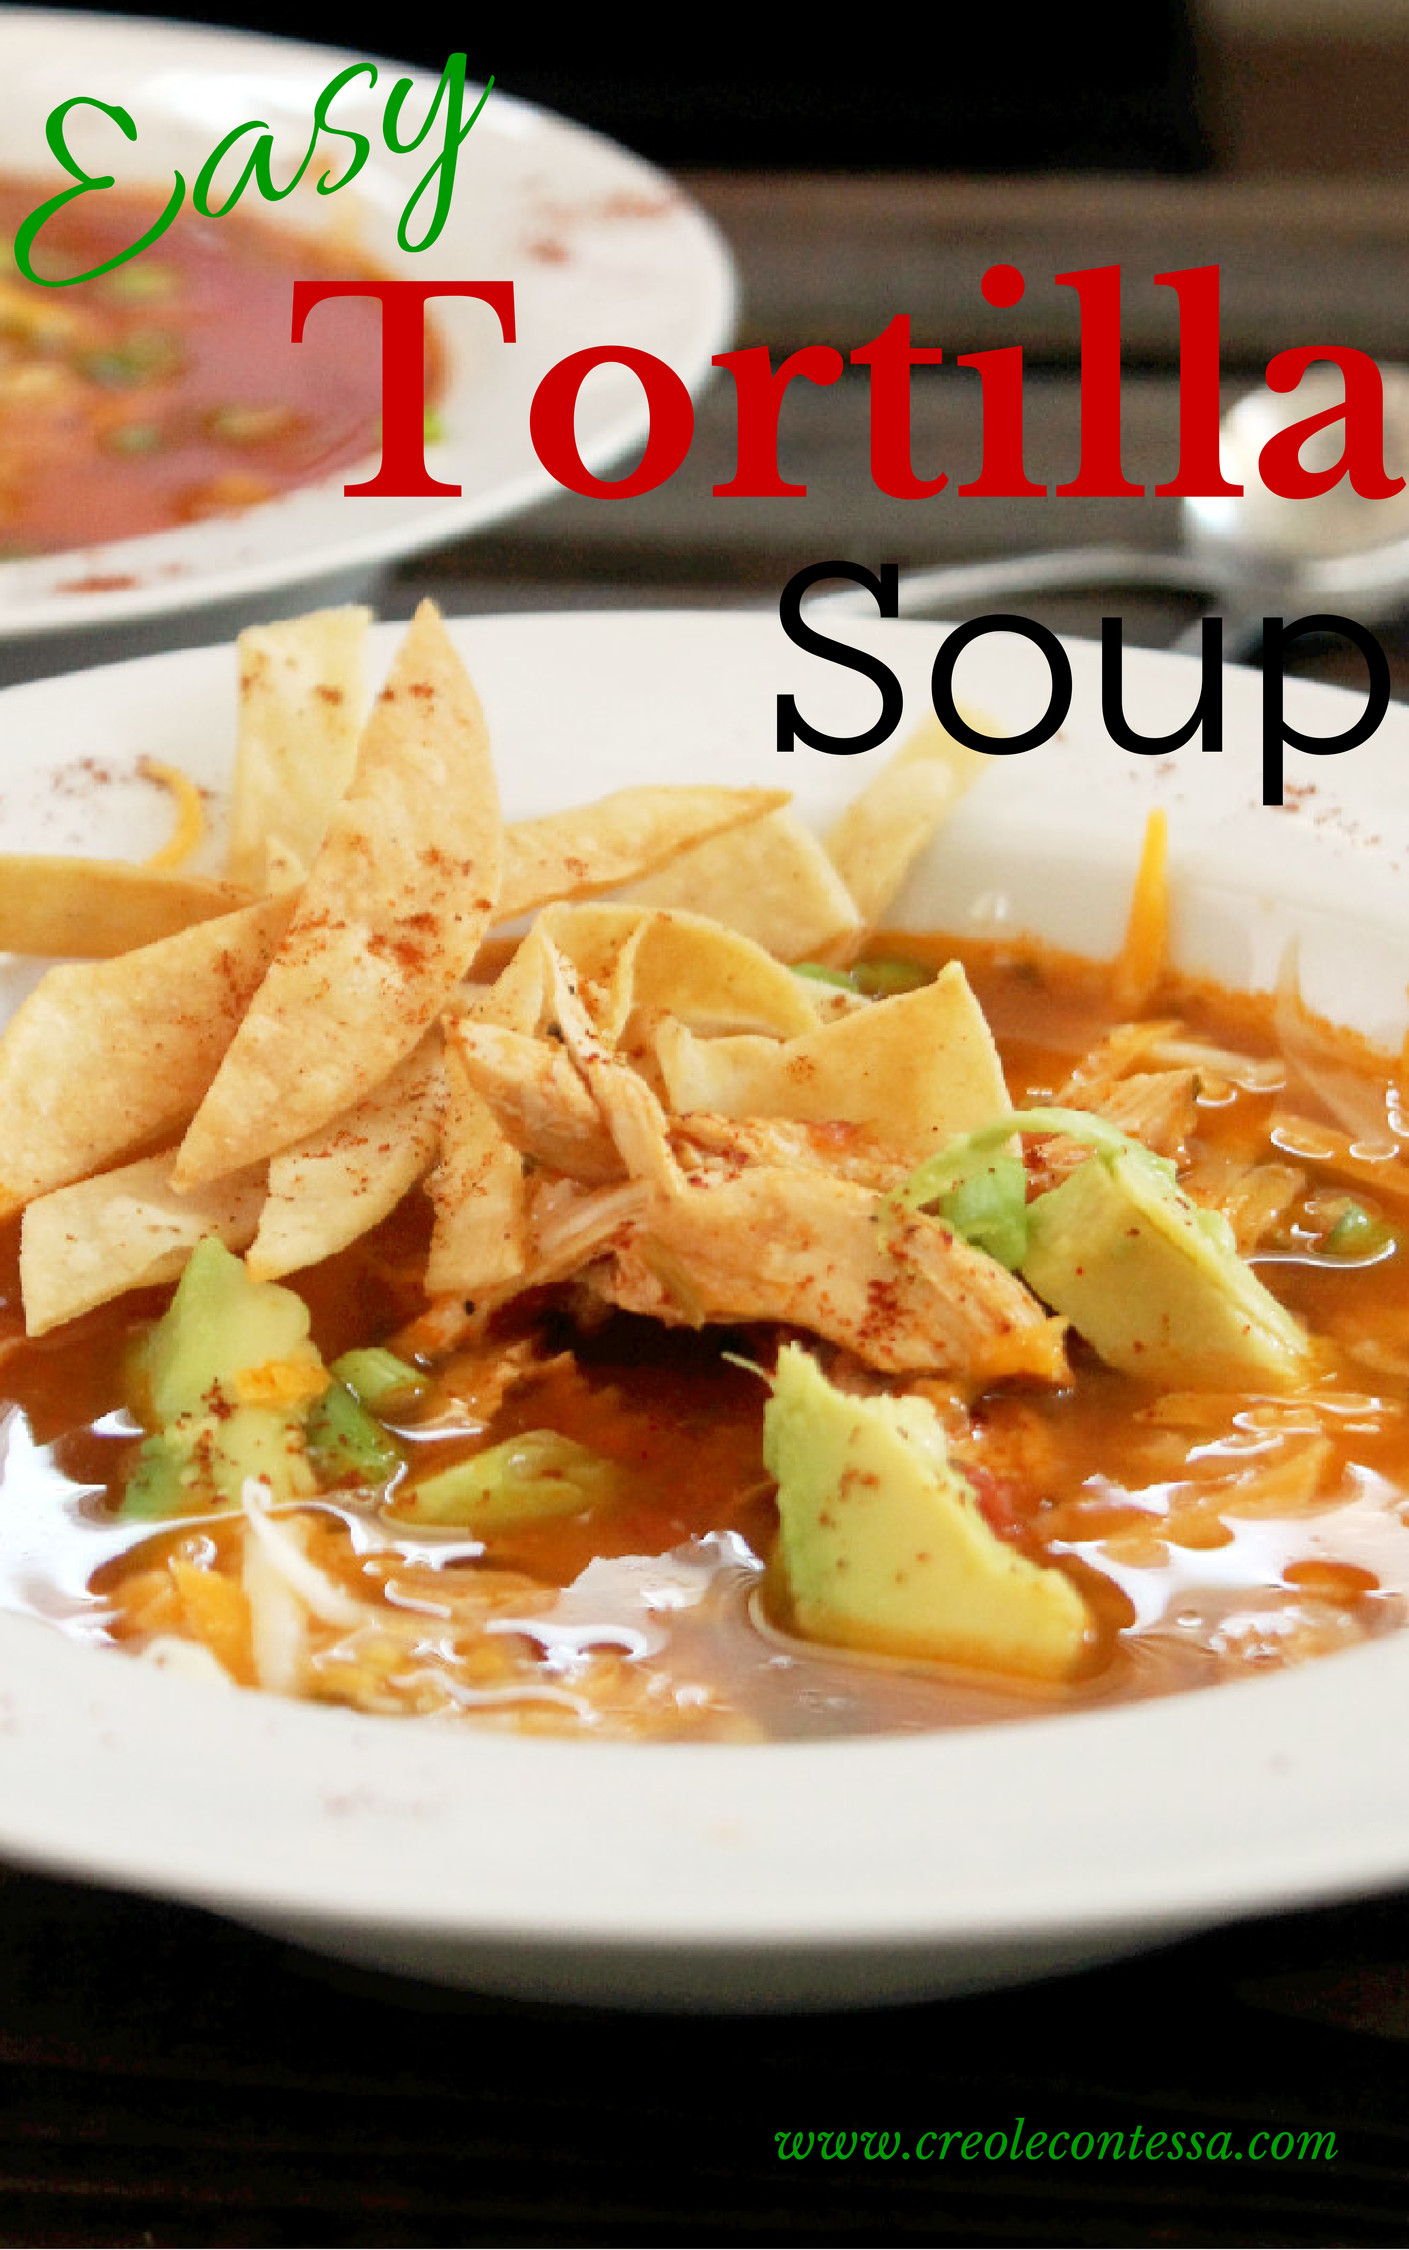 Quick and Easy Chicken Tortilla Soup-Creole Contessa